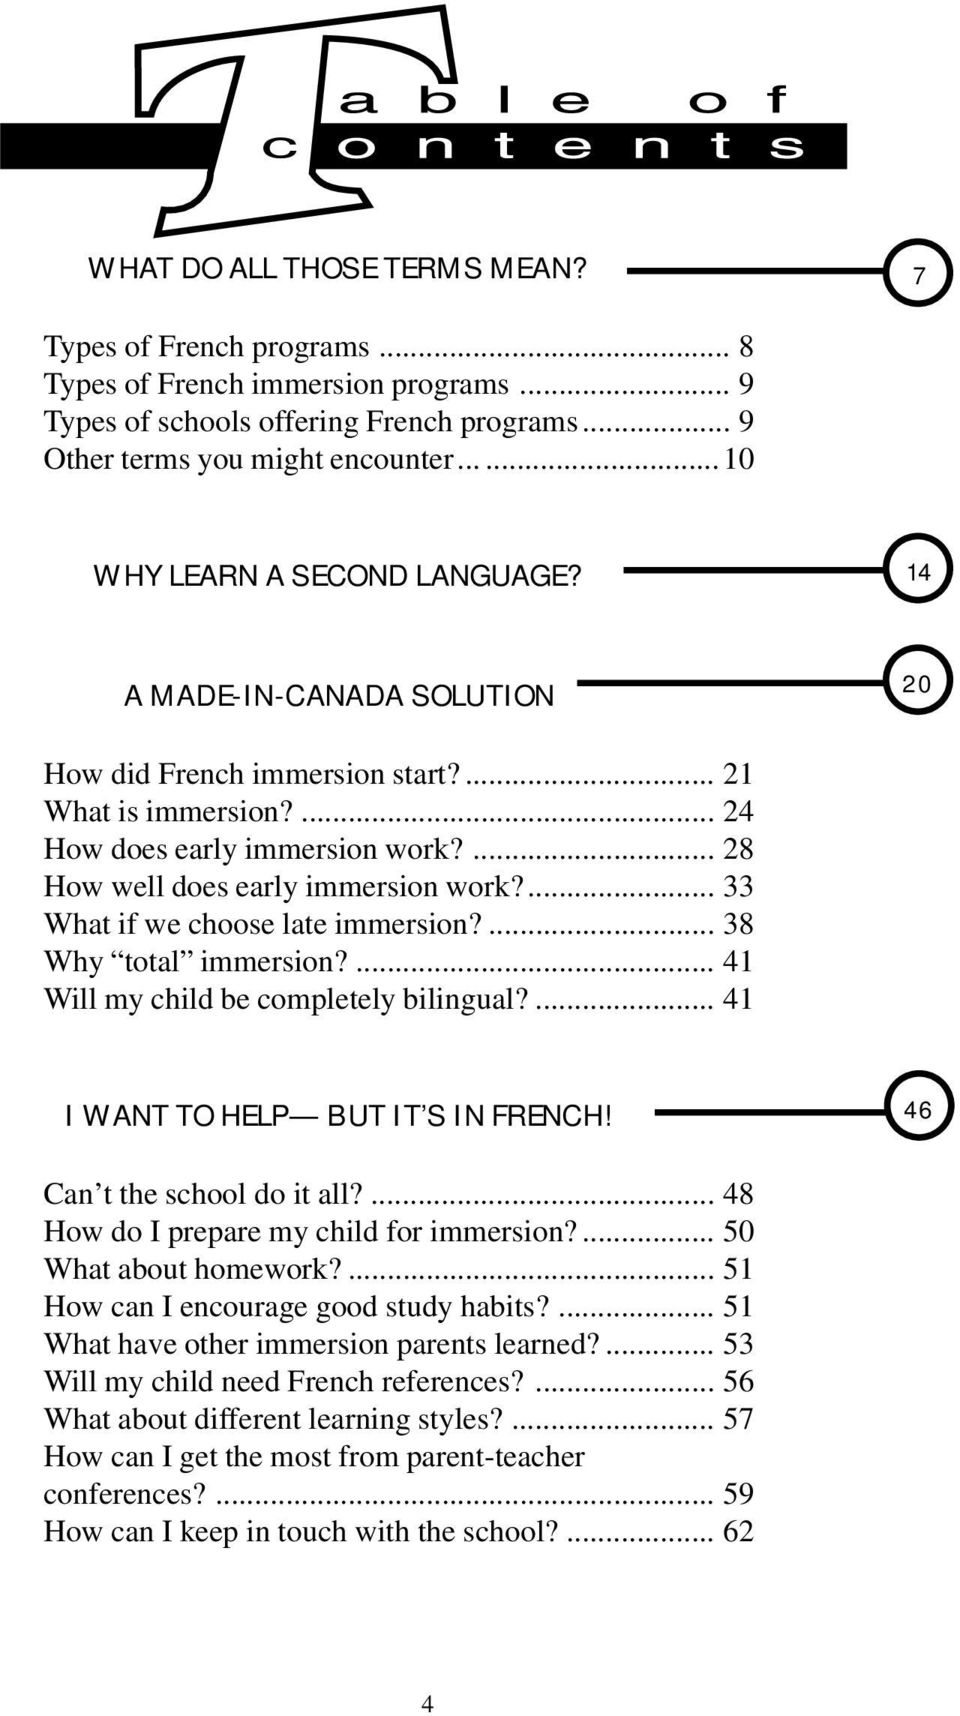 ... 28 How well does early immersion work?... 33 What if we choose late immersion?... 38 Why total immersion?... 41 Will my child be completely bilingual?... 41 I WANT TO HELP BUT IT S IN FRENCH!